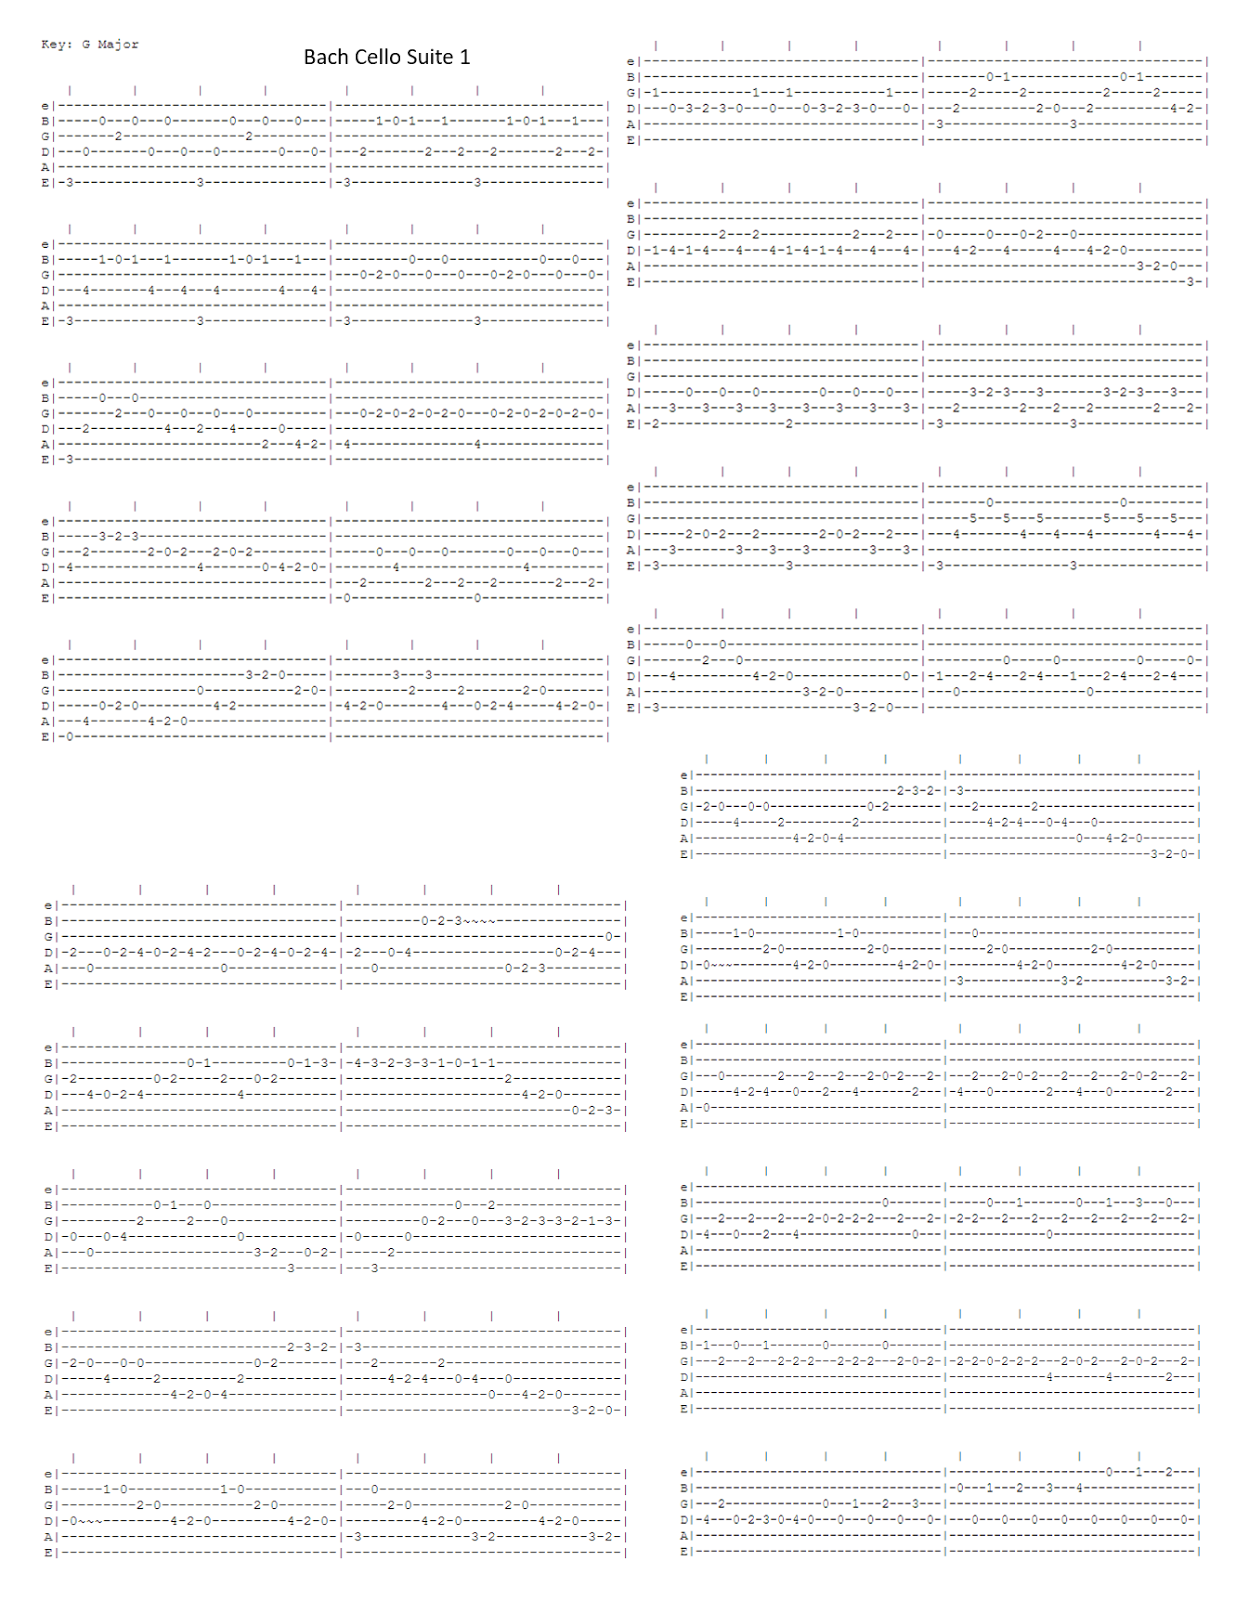 Mattwins Classical Guitar Tabs Nocturne Bach Cello Suite And Moonlight Sonata